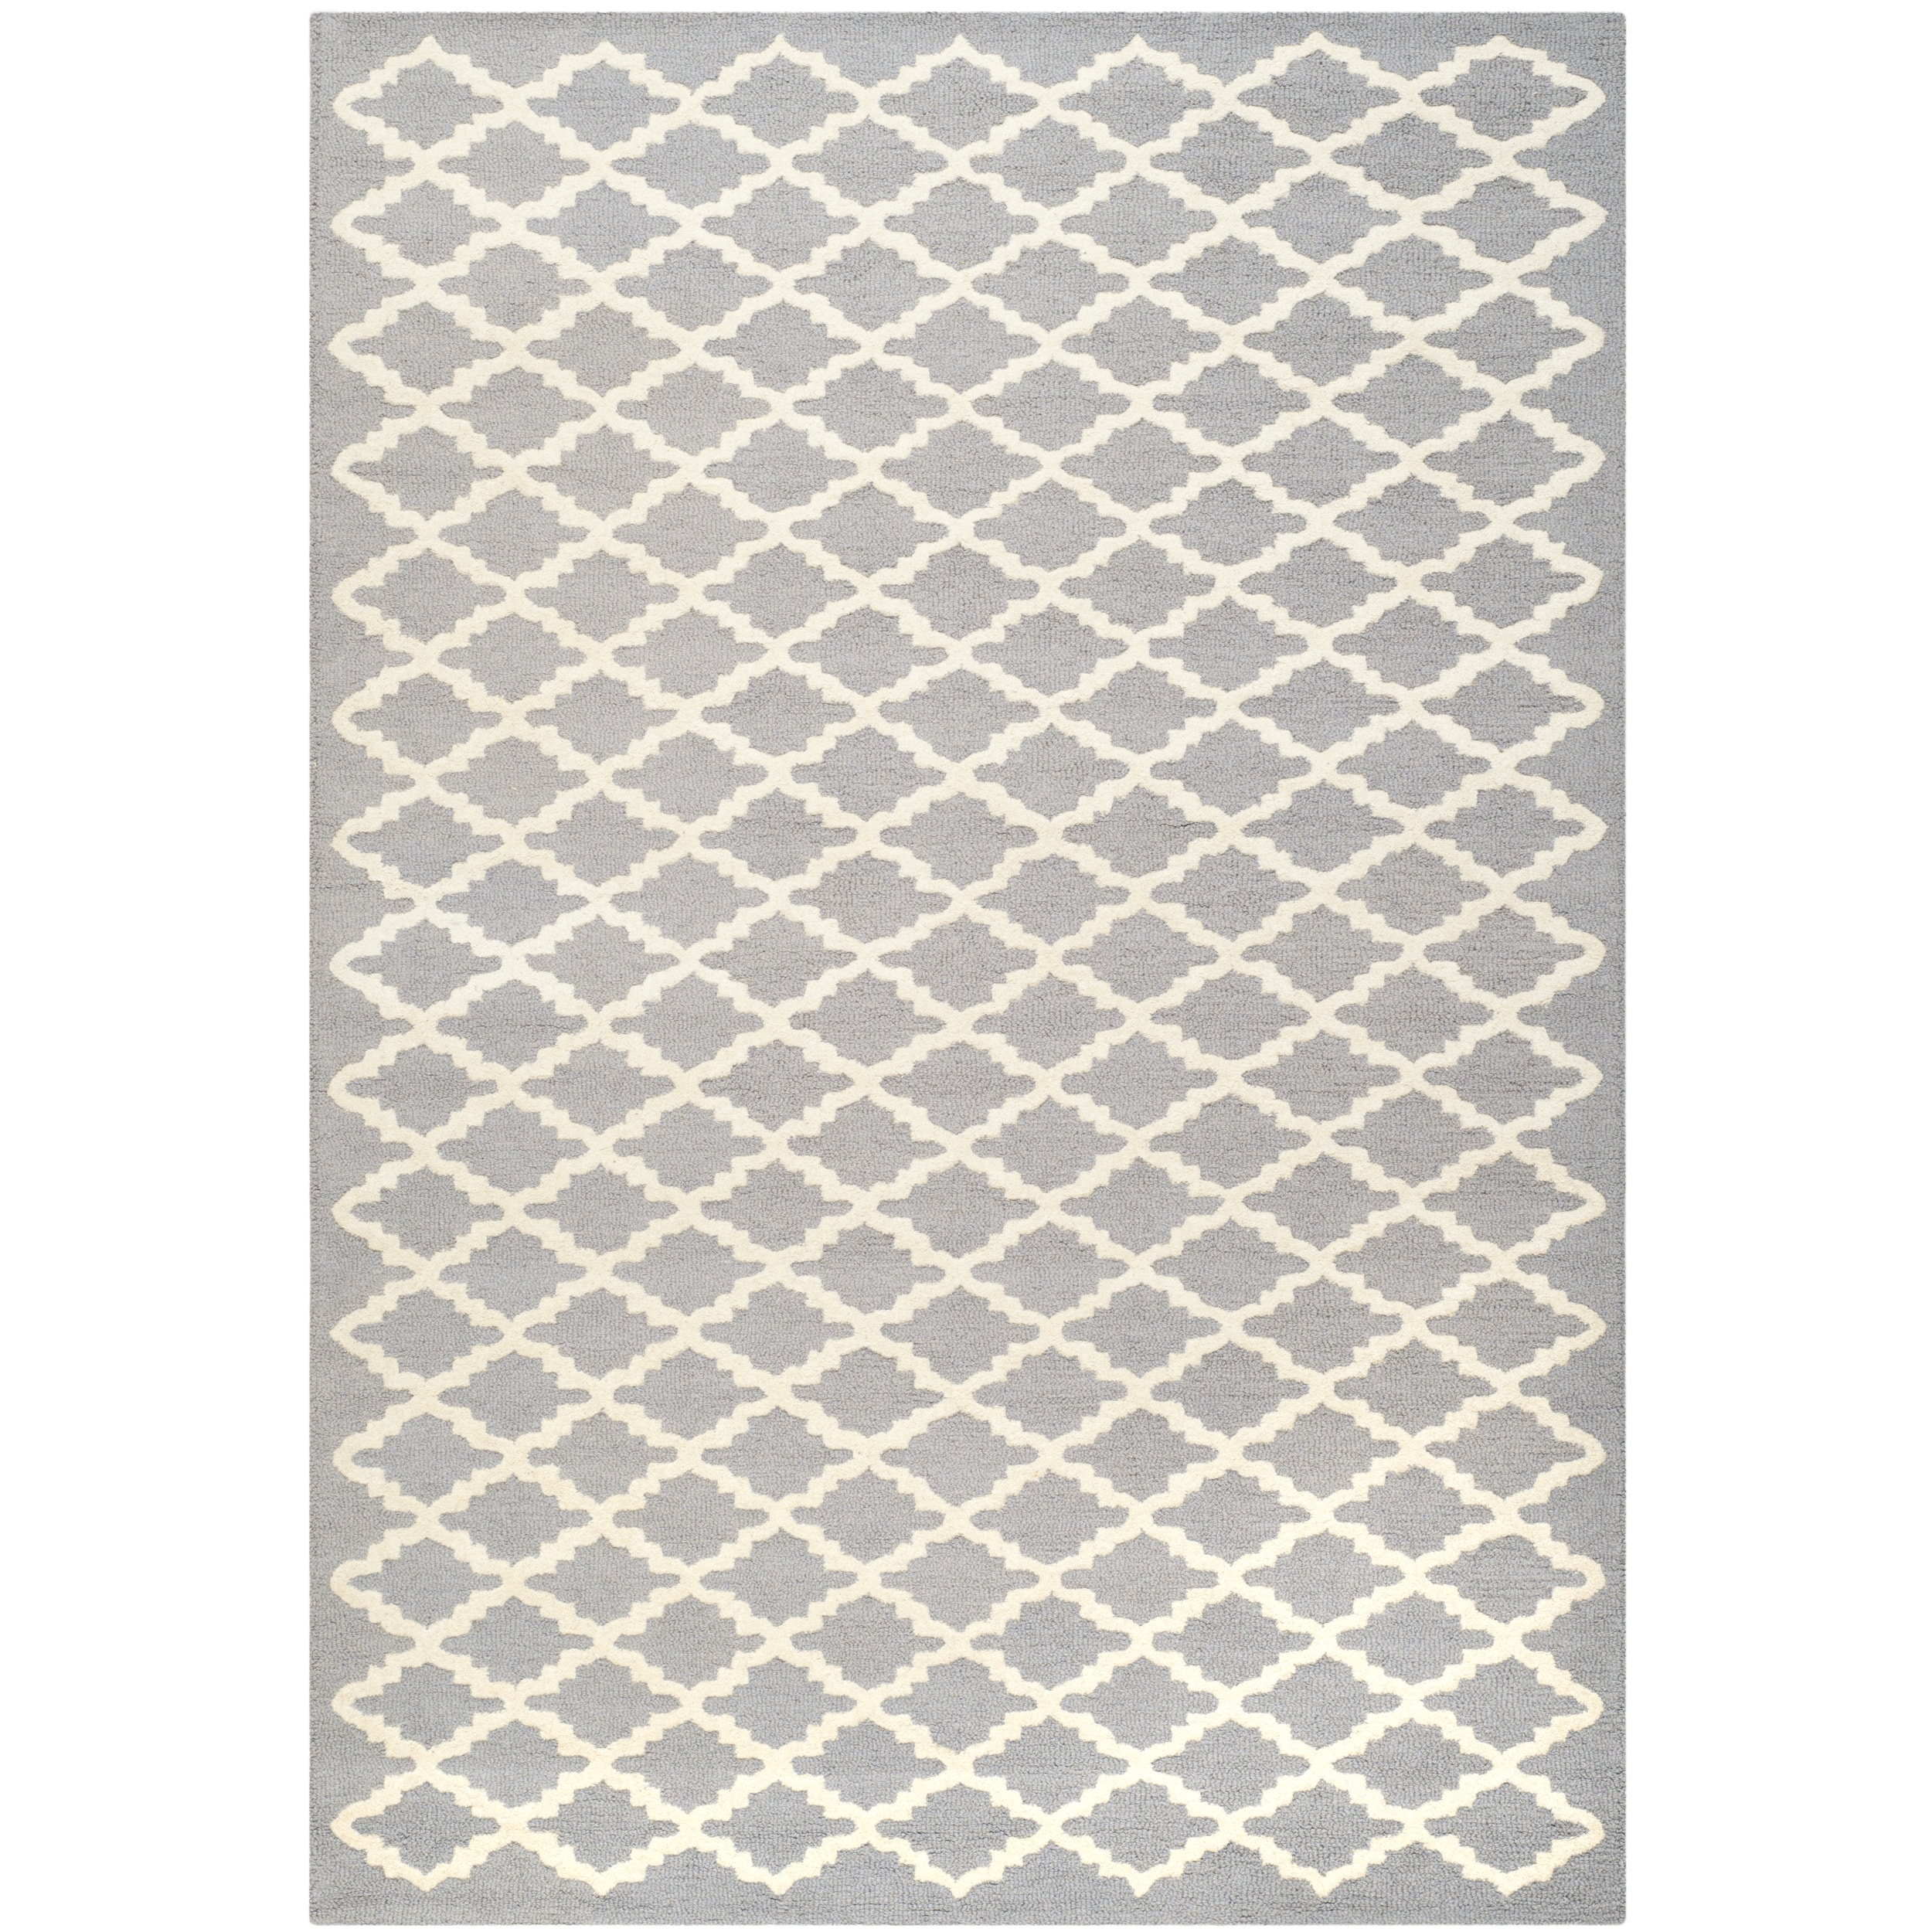 Contemporary Safavieh Handmade Moroccan Cambridge Silver/ Ivory Wool Rug (5' x 8')